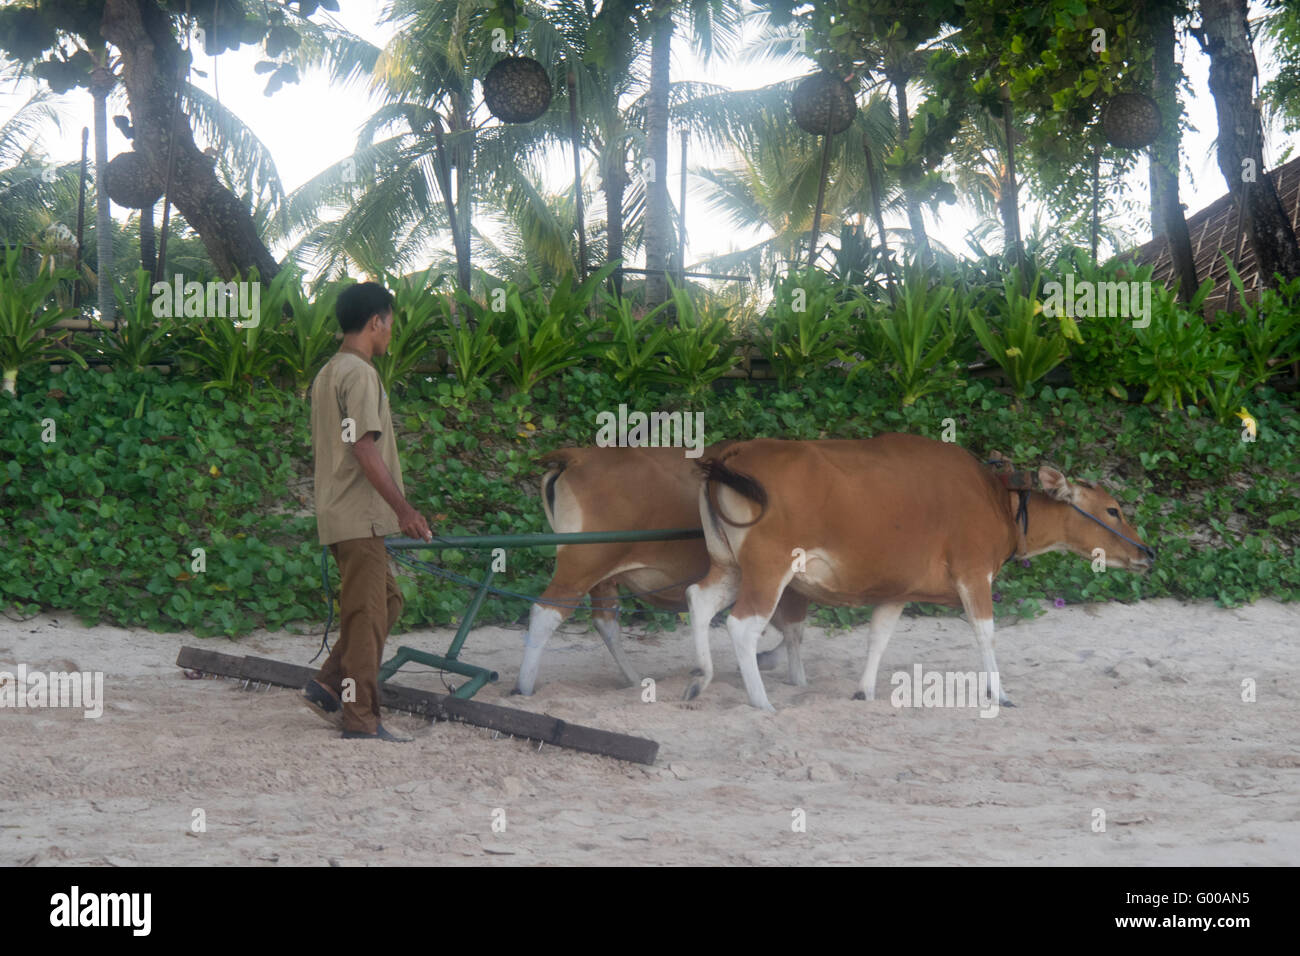 A man and two cows sweeping beach sand. - Stock Image